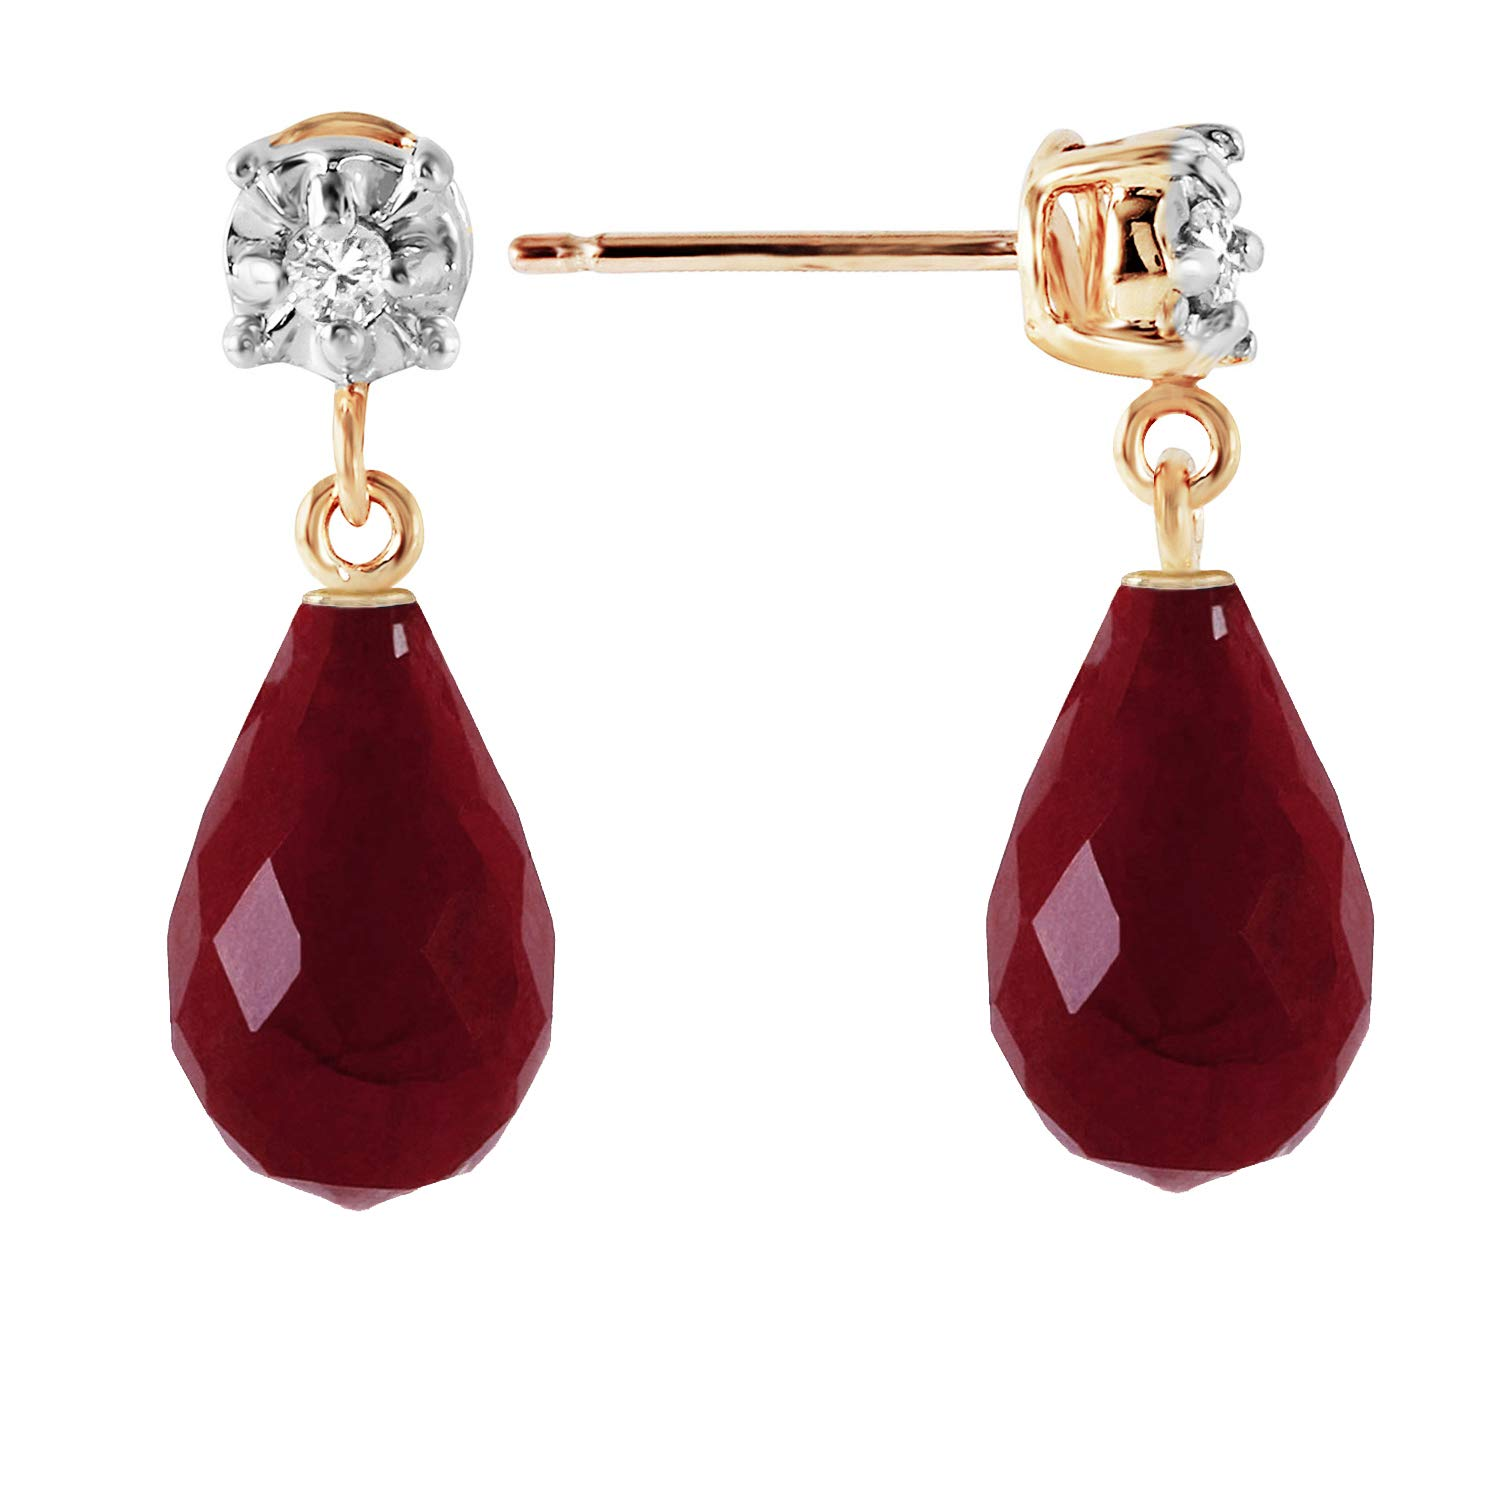 Galaxy Gold 14k Solid Yellow Gold Stud Earrings with Natural Diamonds and Natural Rubies